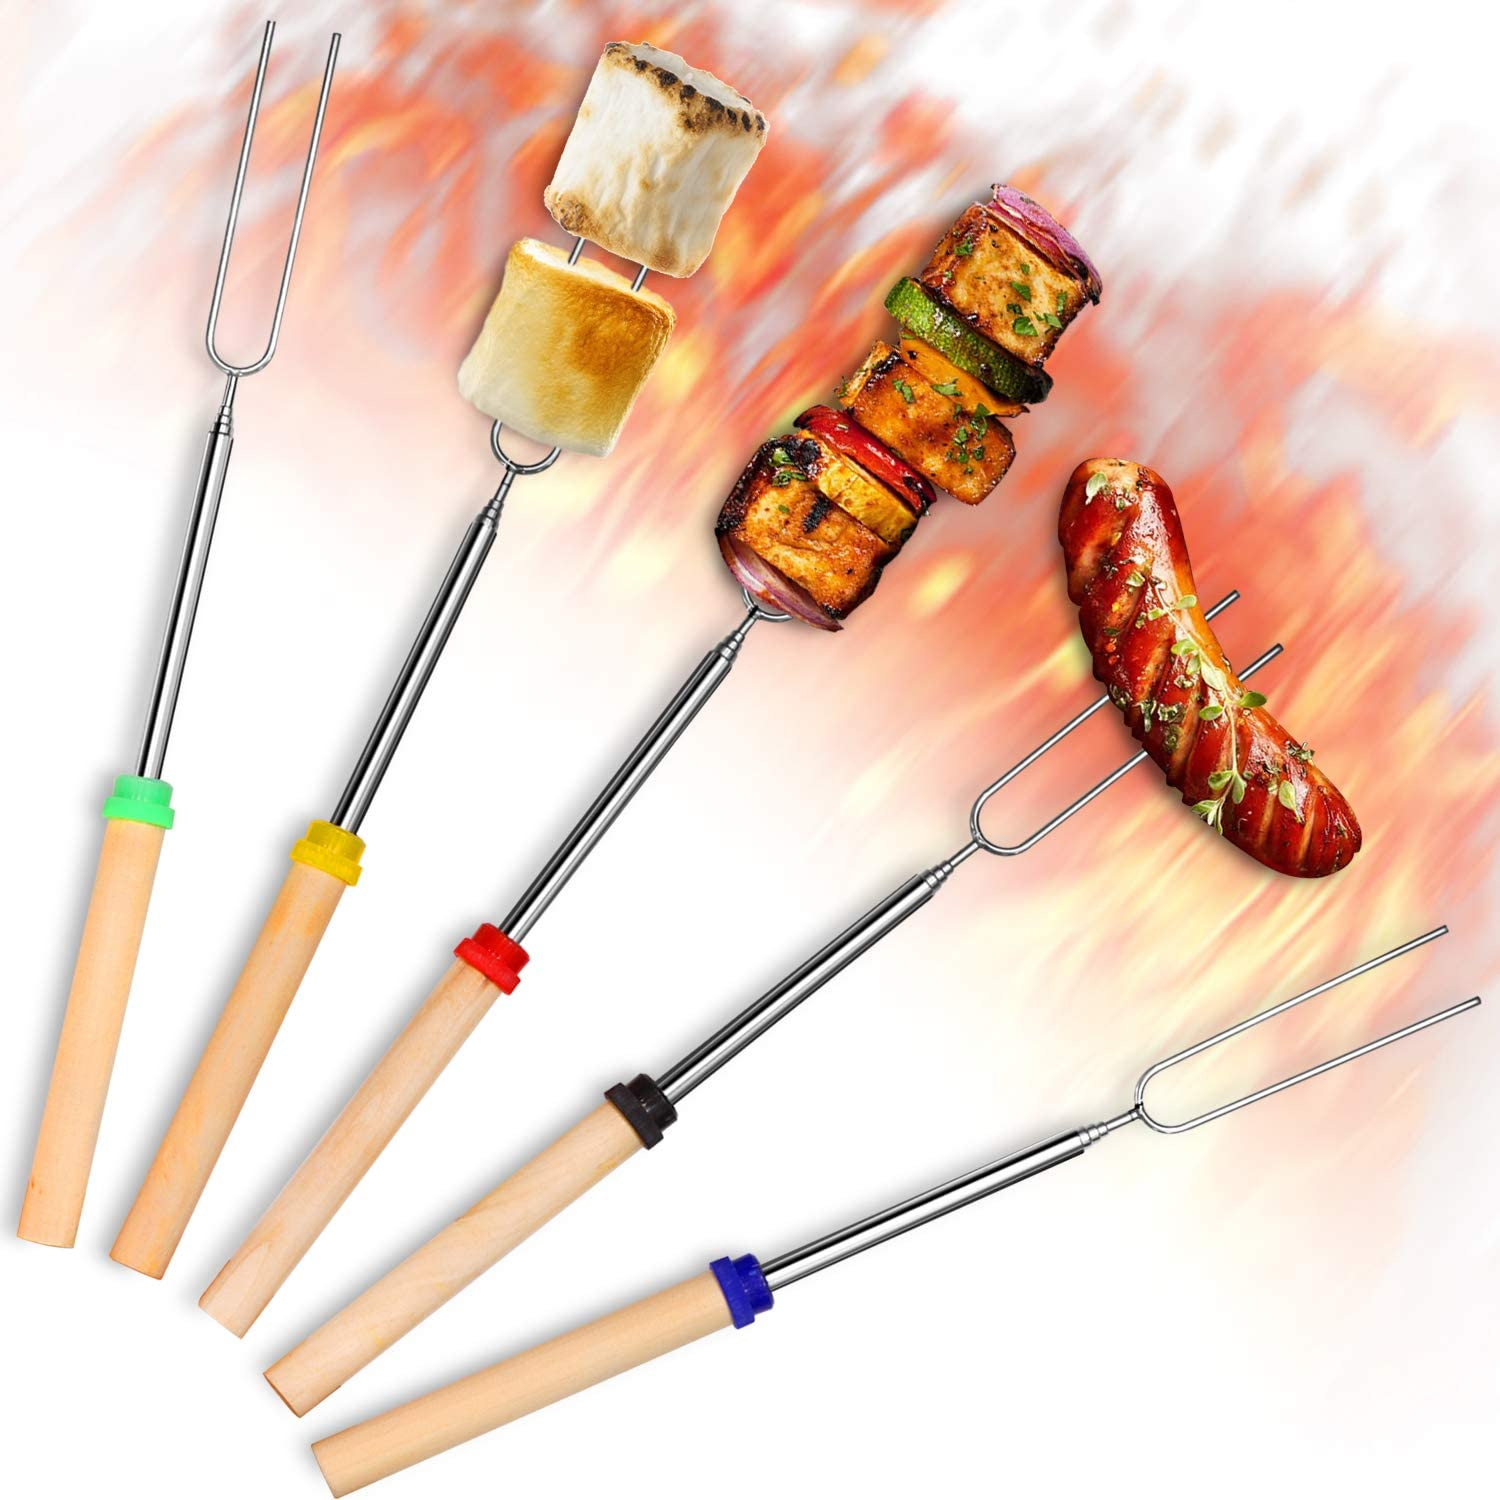 Betus Barbecue Forks for Outside Grill, Roasting Stick with 32 Inch Extra Extendable Metal and Wooden Handle - Telescoping BBQ Grill Kid Skewer Campfire Fork Tool for Fire Pit - Set of 5 Pcs : Garden & Outdoor